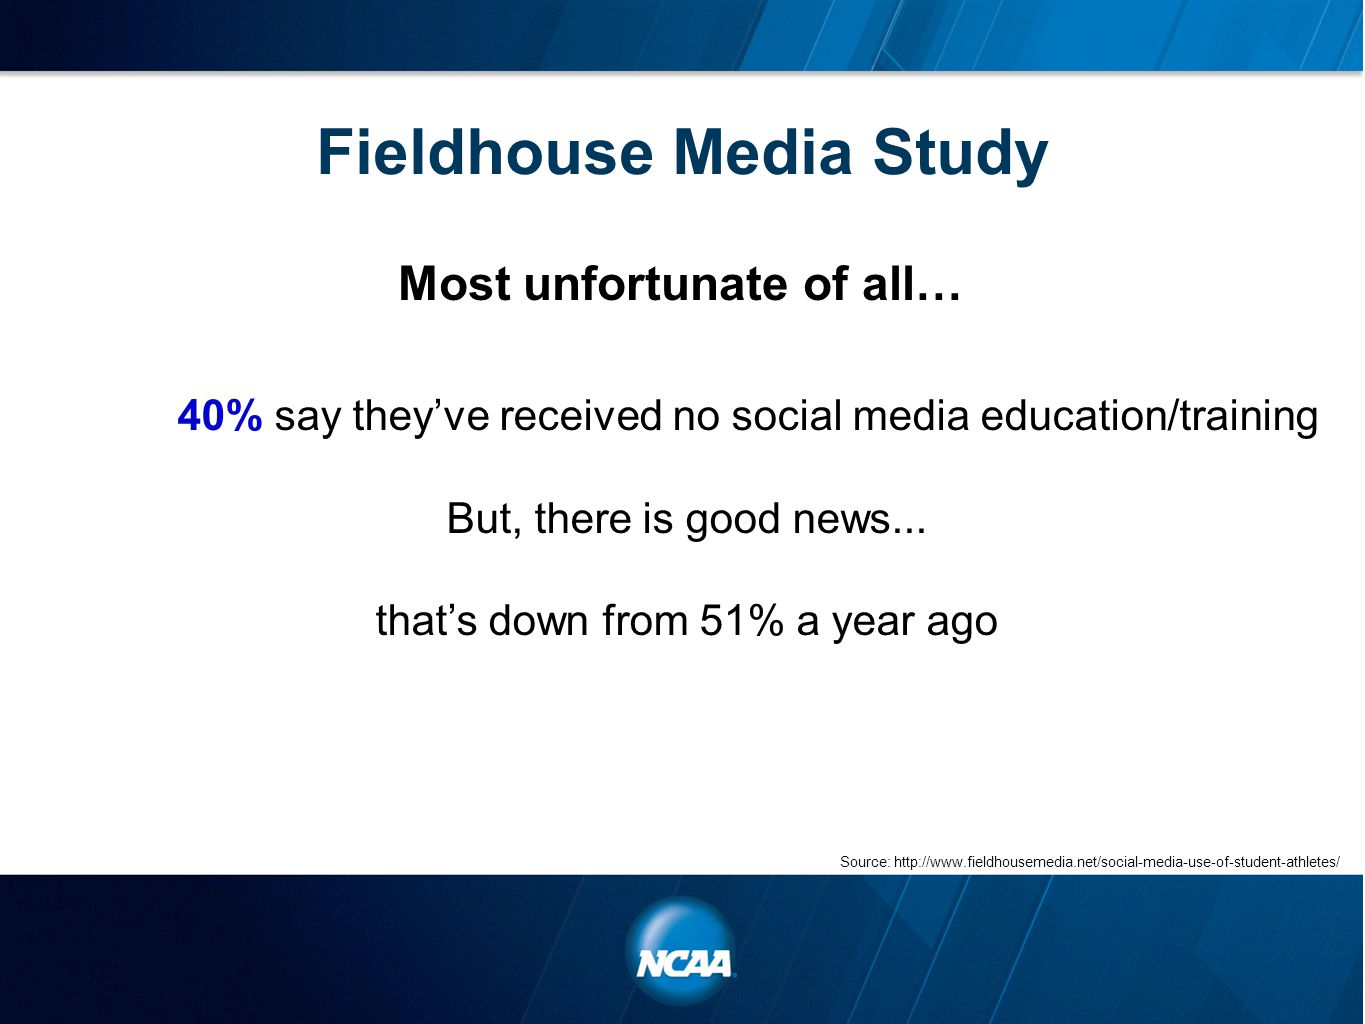 Fieldhouse Media Study Most unfortunate of all… 40% say they've received no social media education/training But, there is good news... that's down fro